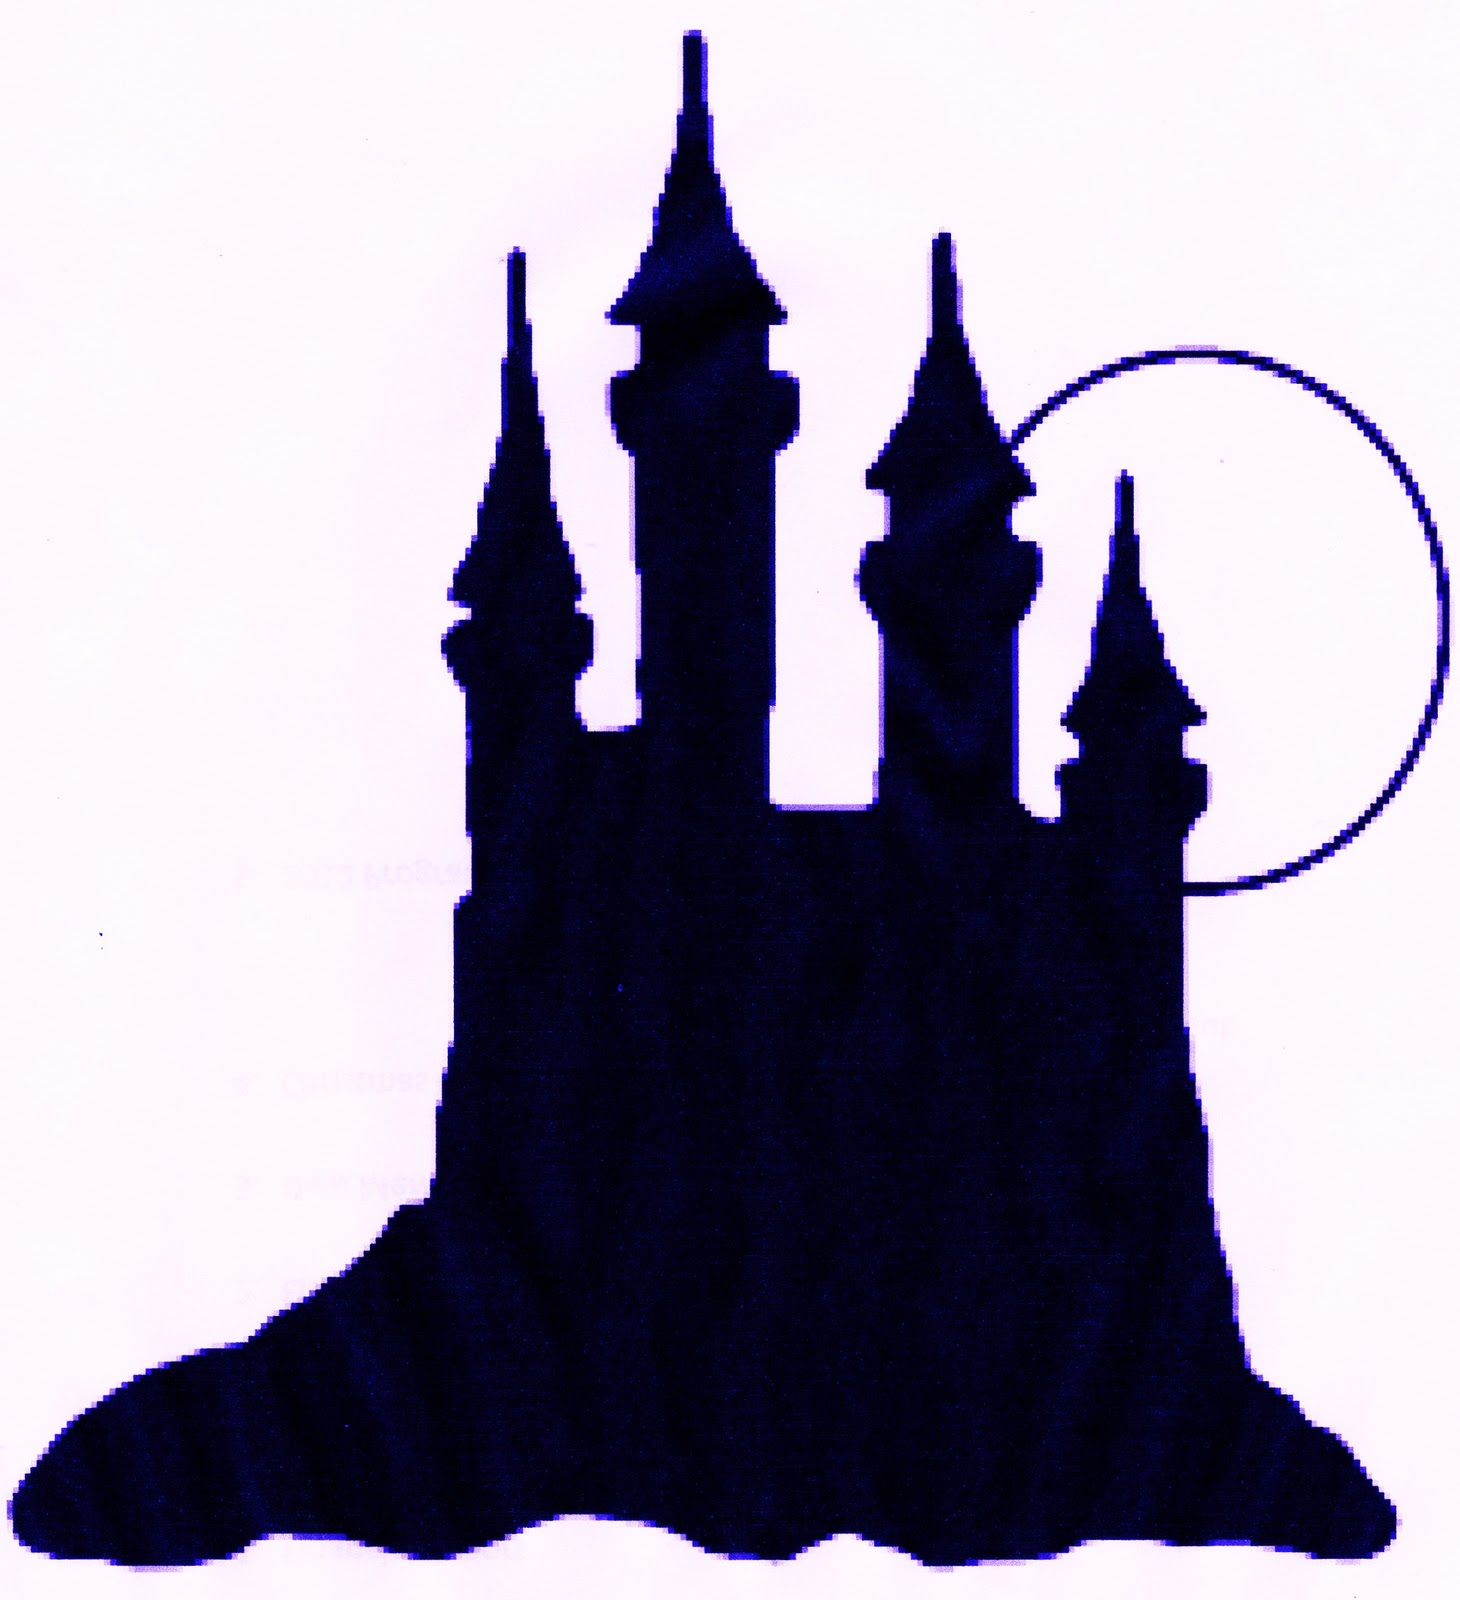 beauty and the beast silhouette clip art at getdrawings com free